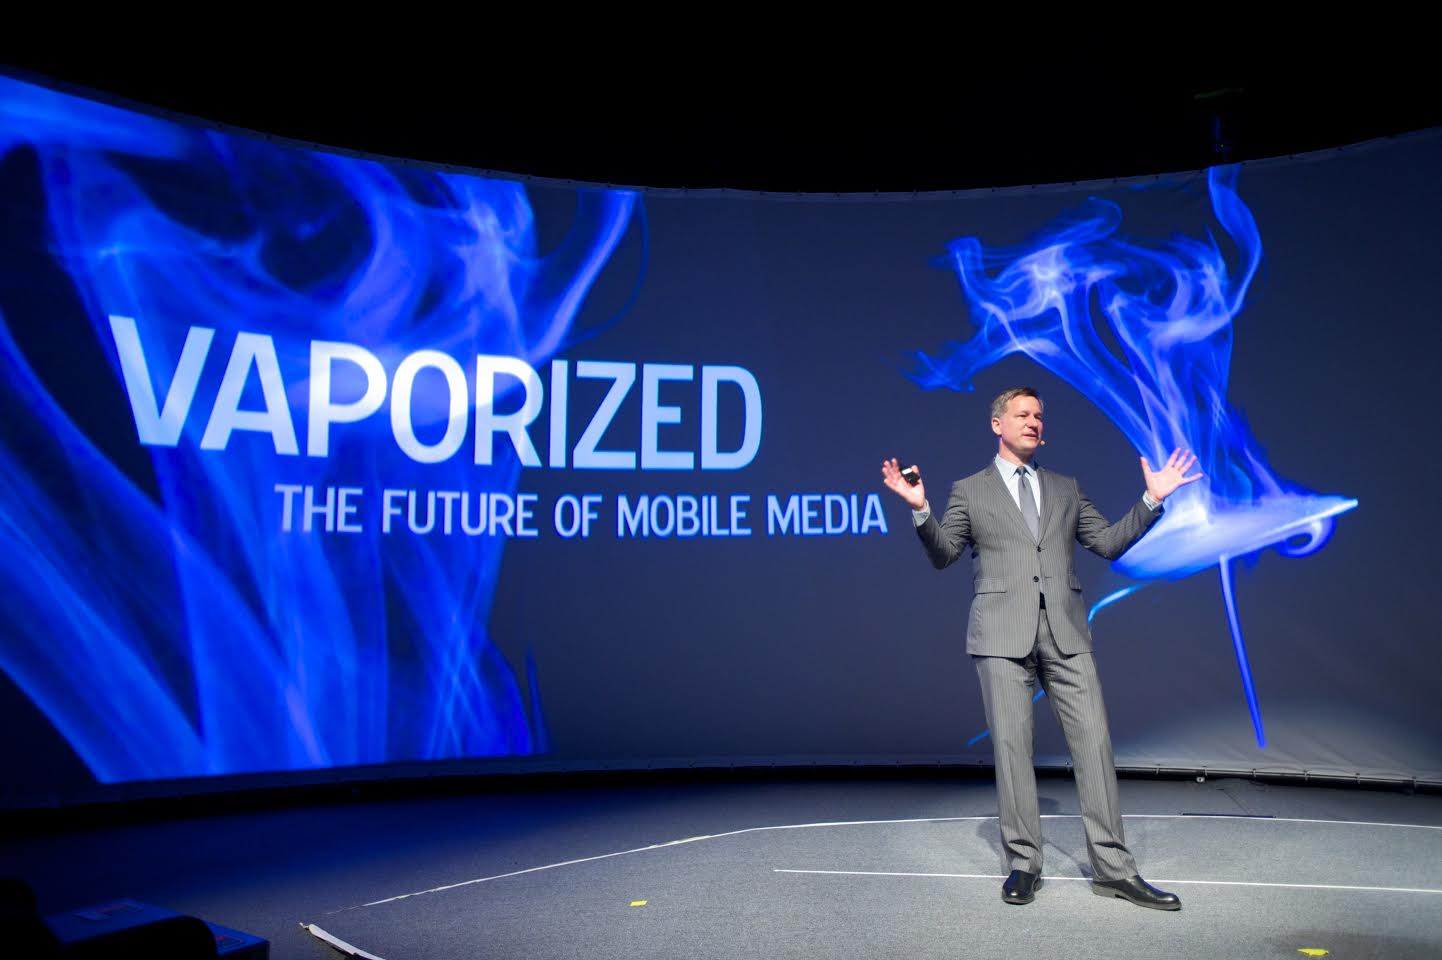 Media Futurist Robert Tercek to Headline Demo Day